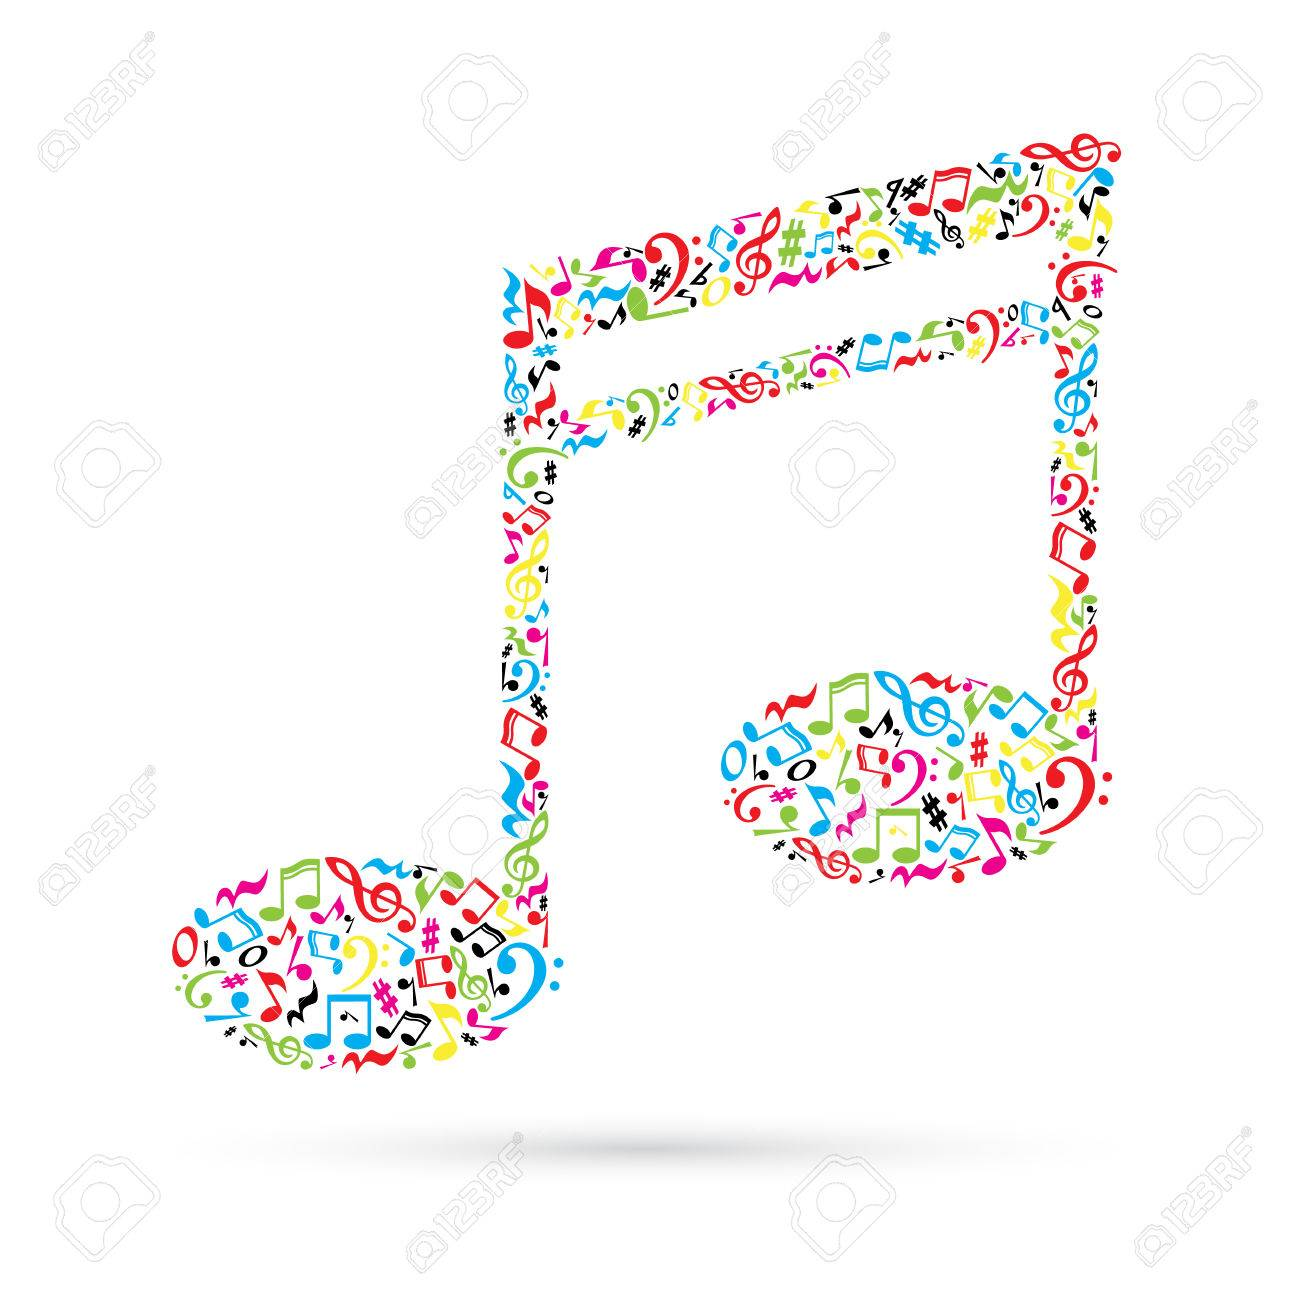 Music note made of music notes on white background colorful music note made of music notes on white background colorful notes pattern note shape buycottarizona Image collections